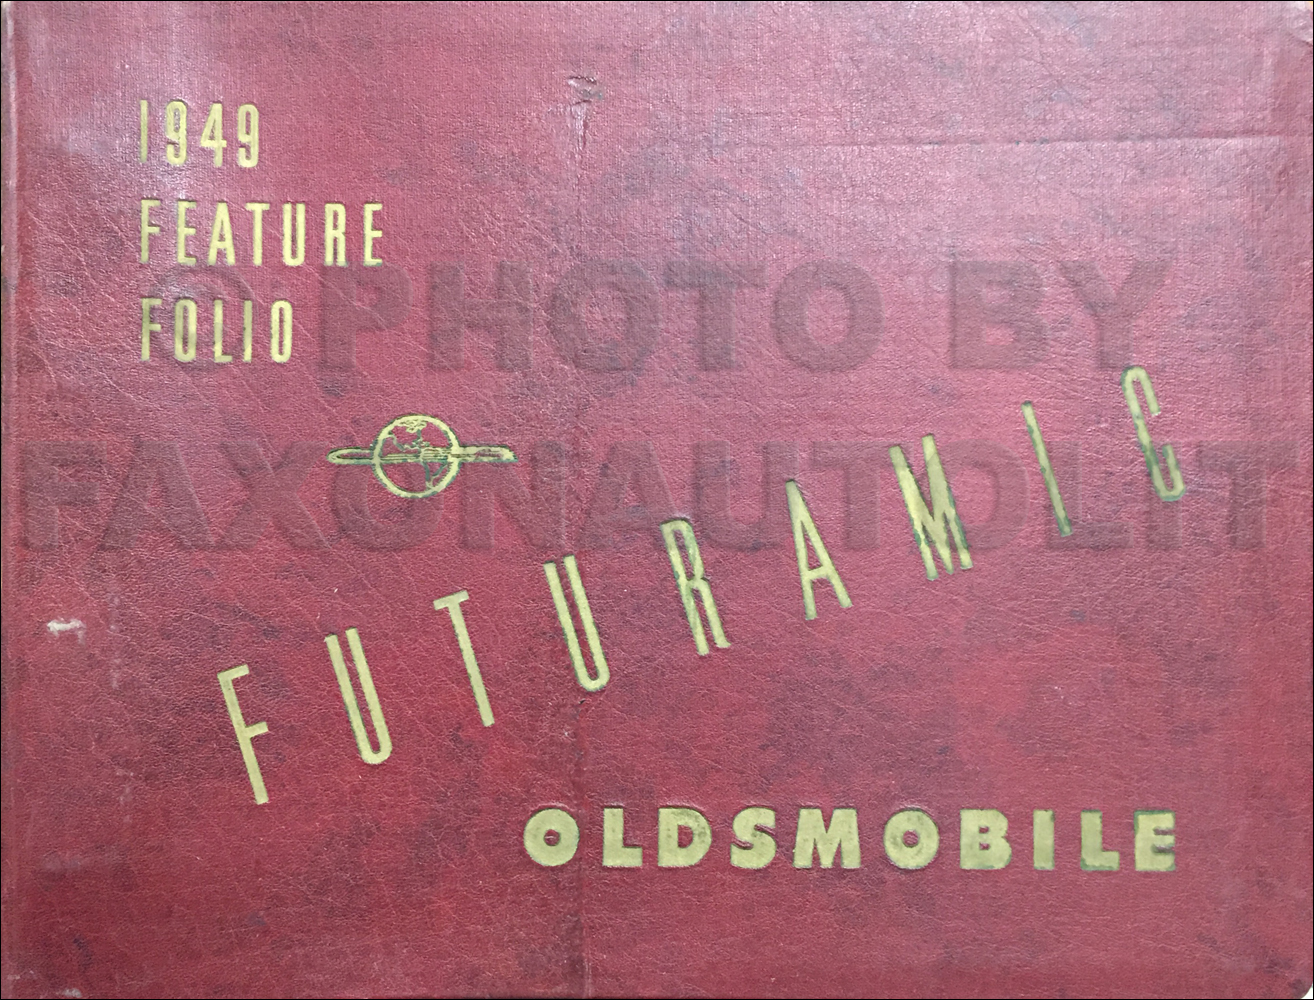 1949 Oldsmobile Feature Folio Dealer Album Original